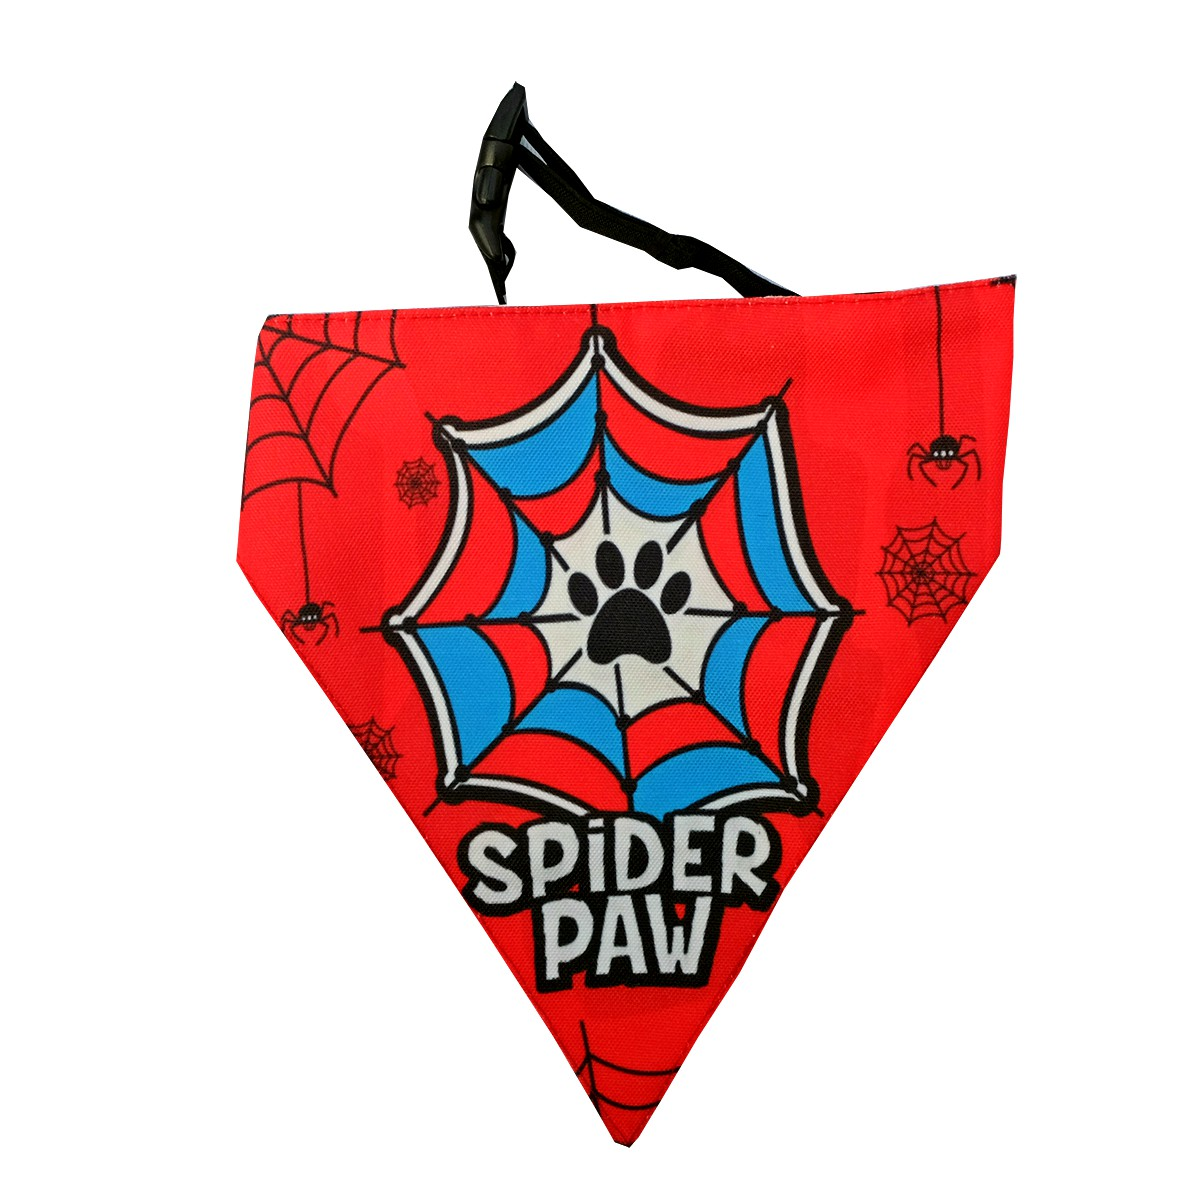 LANA Paws SpiderPaw Adjustable Bandana - Medium & Large